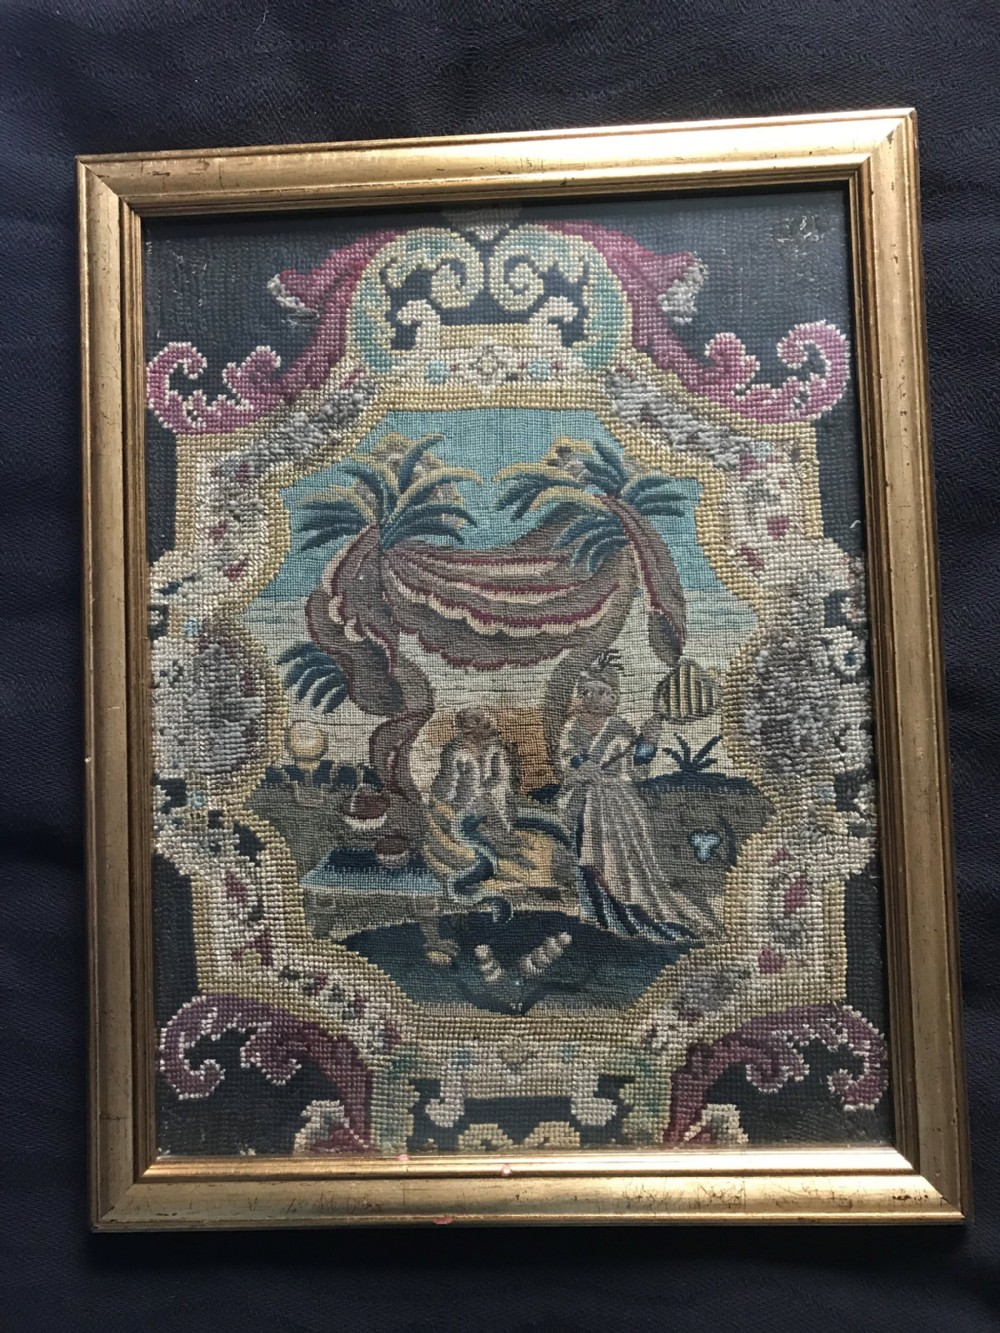 'the monkey king' needlework panel c1720